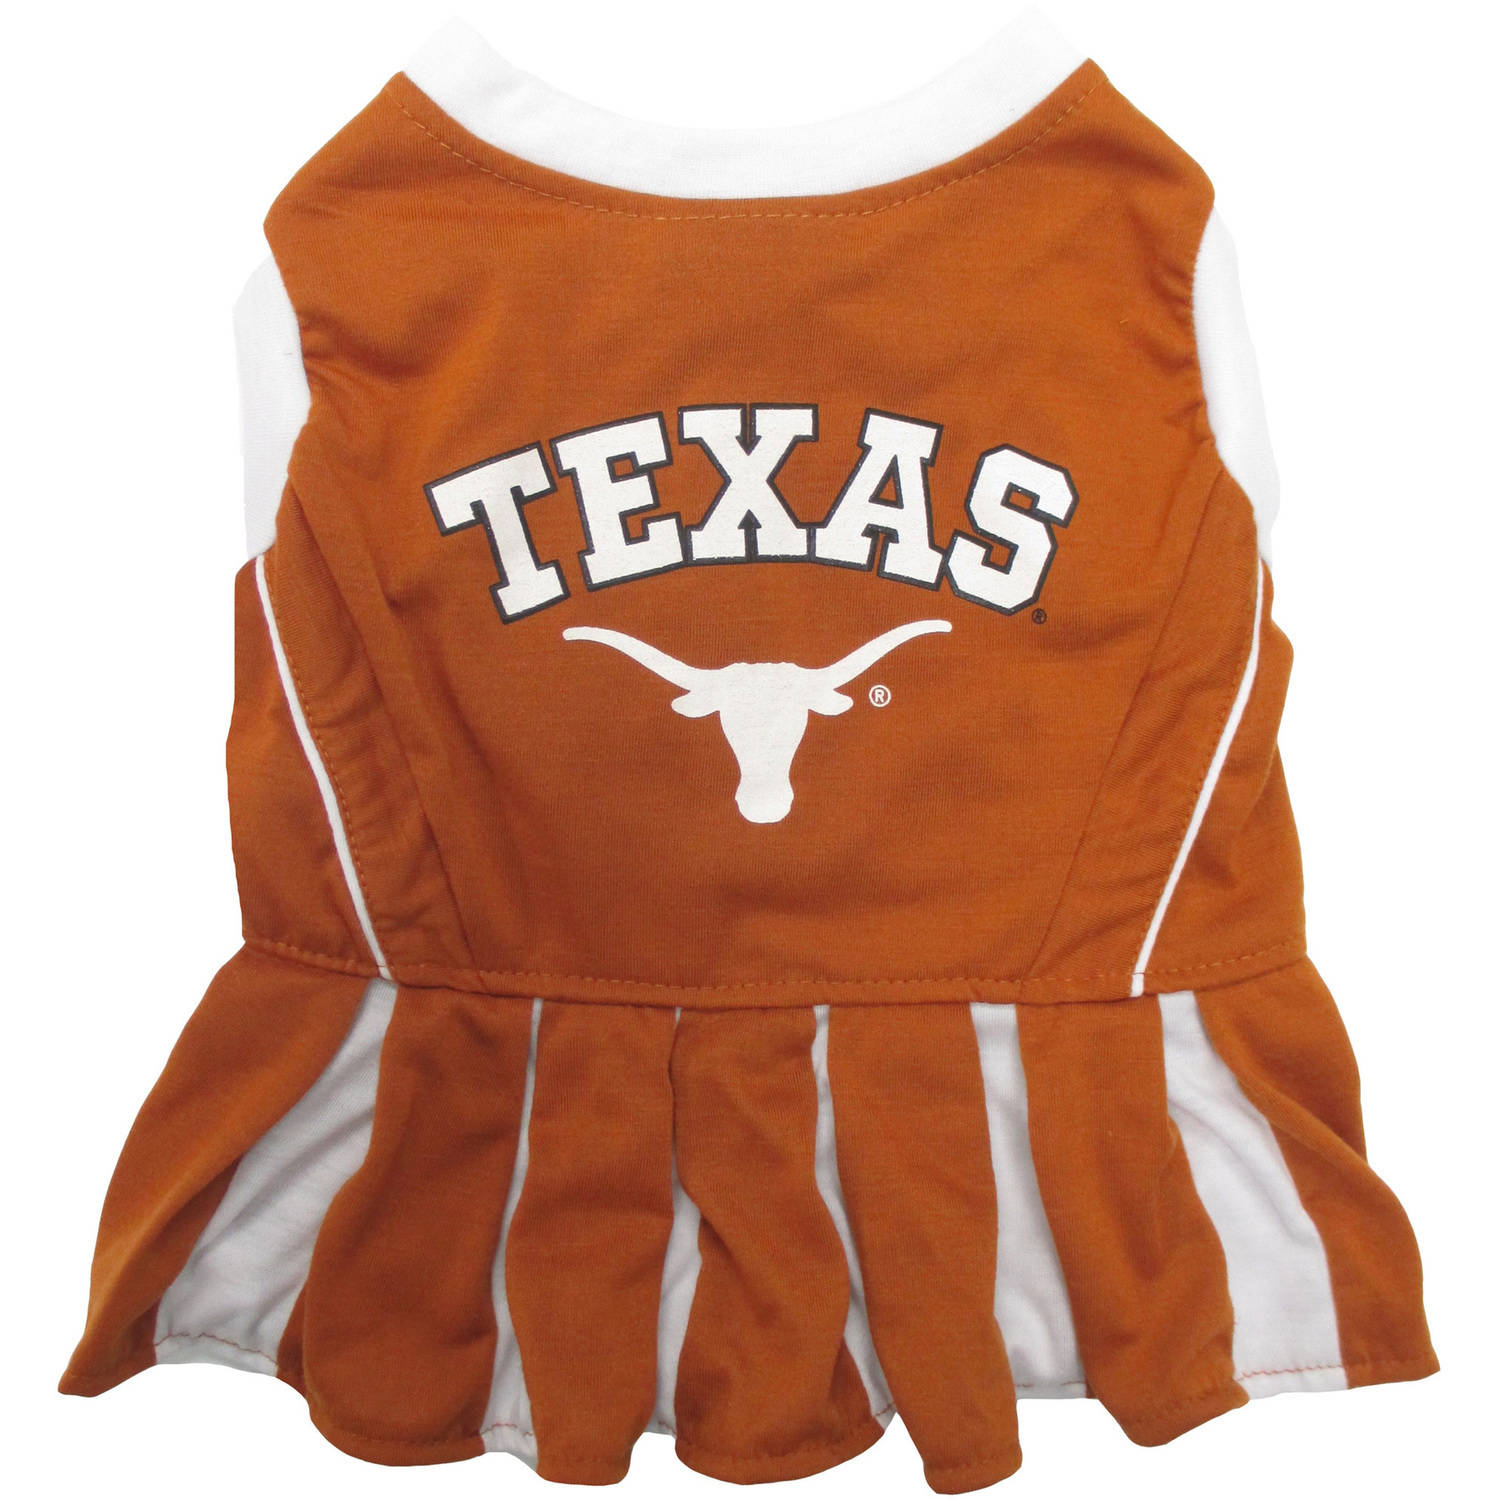 Pets First College Texas Longhorns Cheerleader, 3 Sizes Pet Dress Available. Licensed Dog Outfit